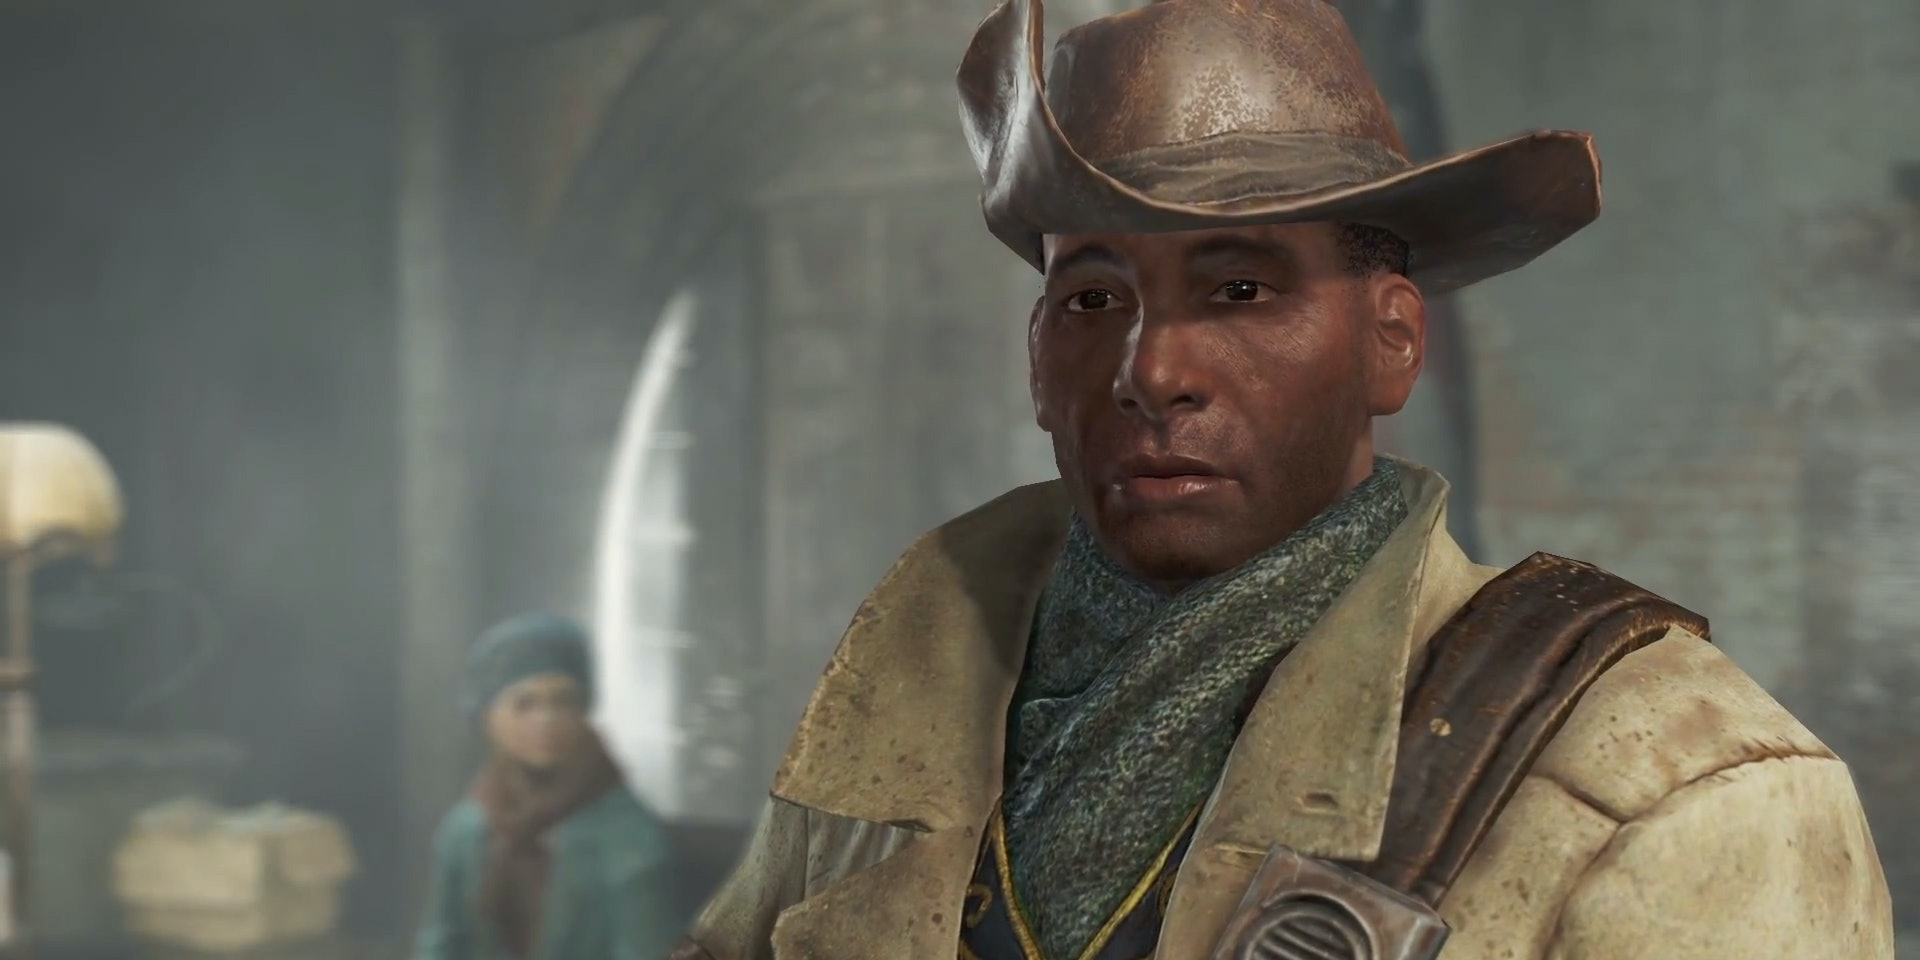 An Ode to Preston Garvey, the Minuteman of 'Fallout 4' Who Deserves a Defender